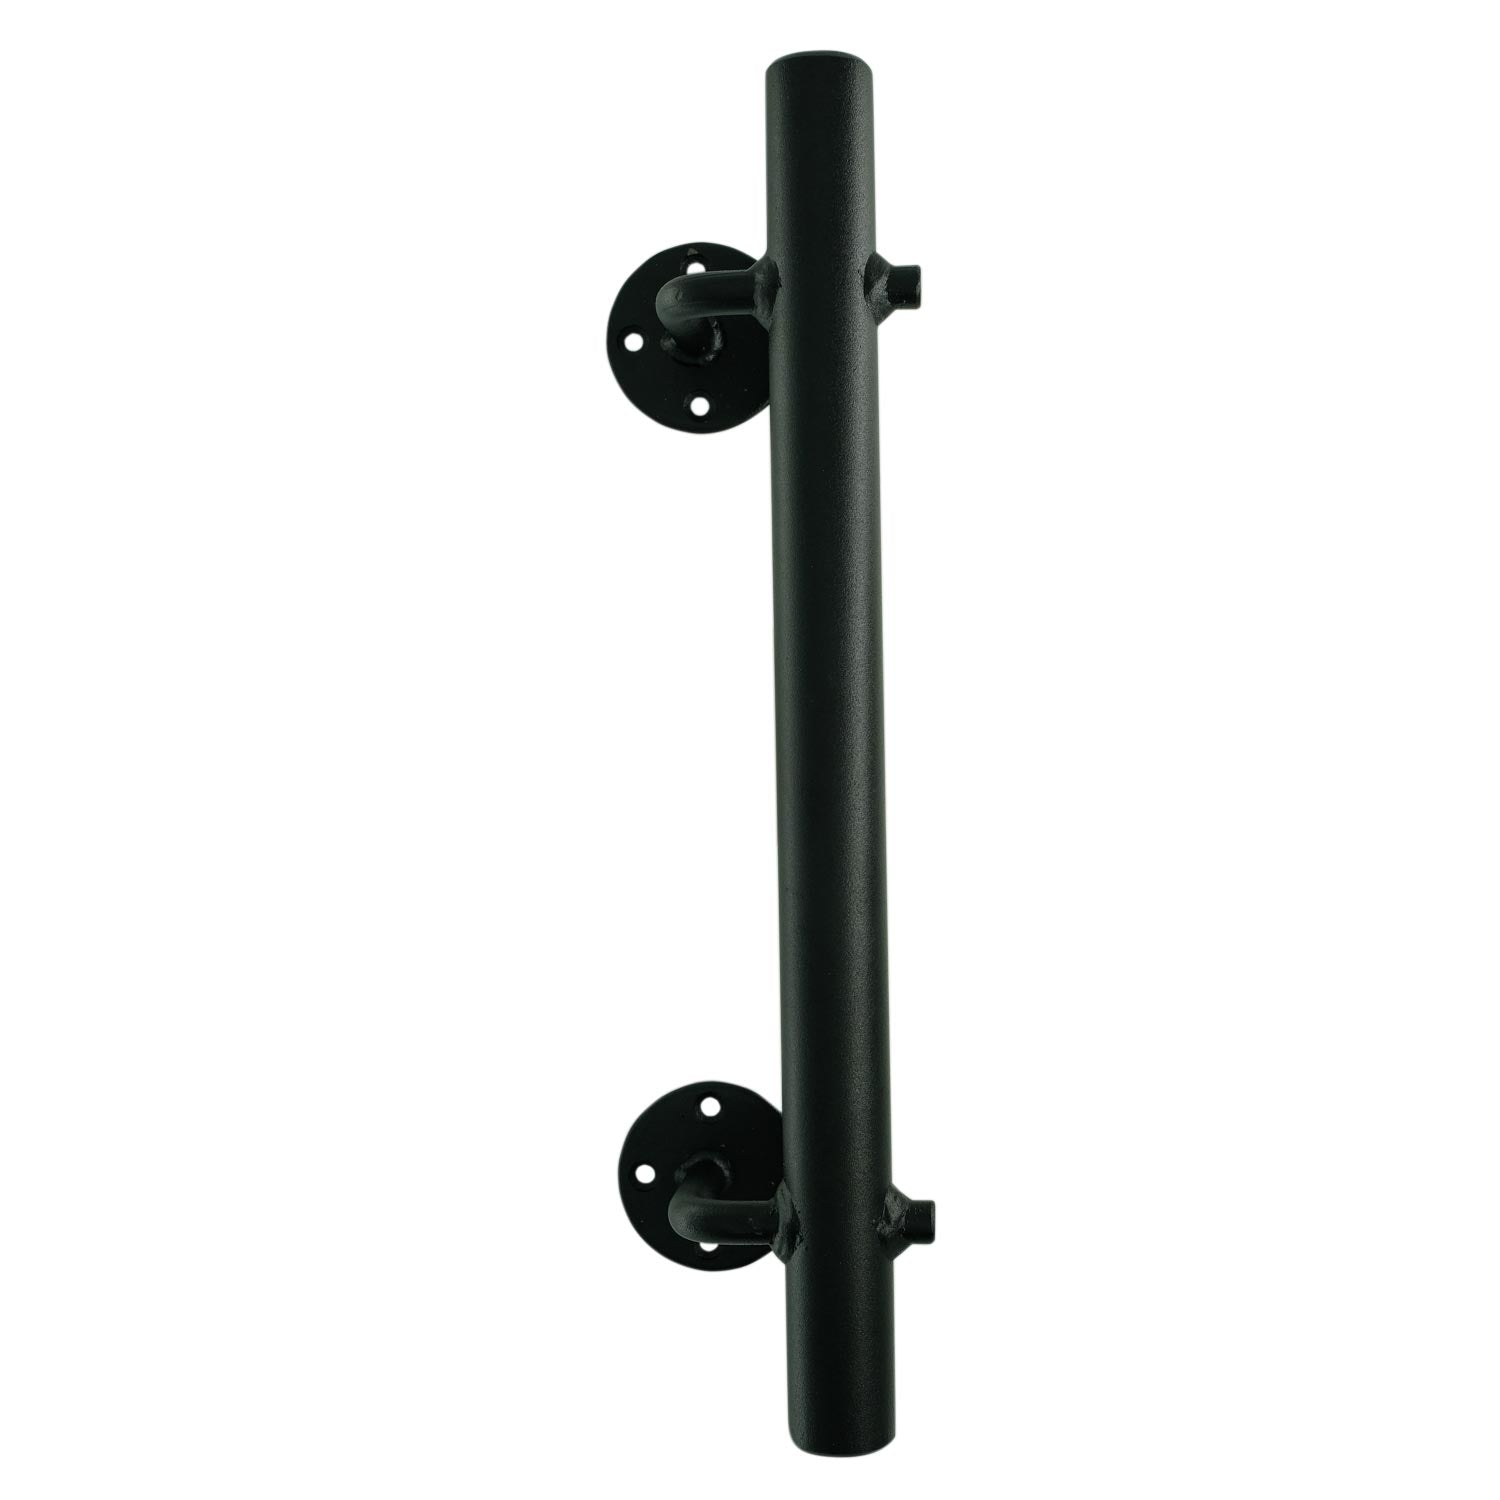 AV7 Round Matt Black Avax Door Pull Handle (Each)